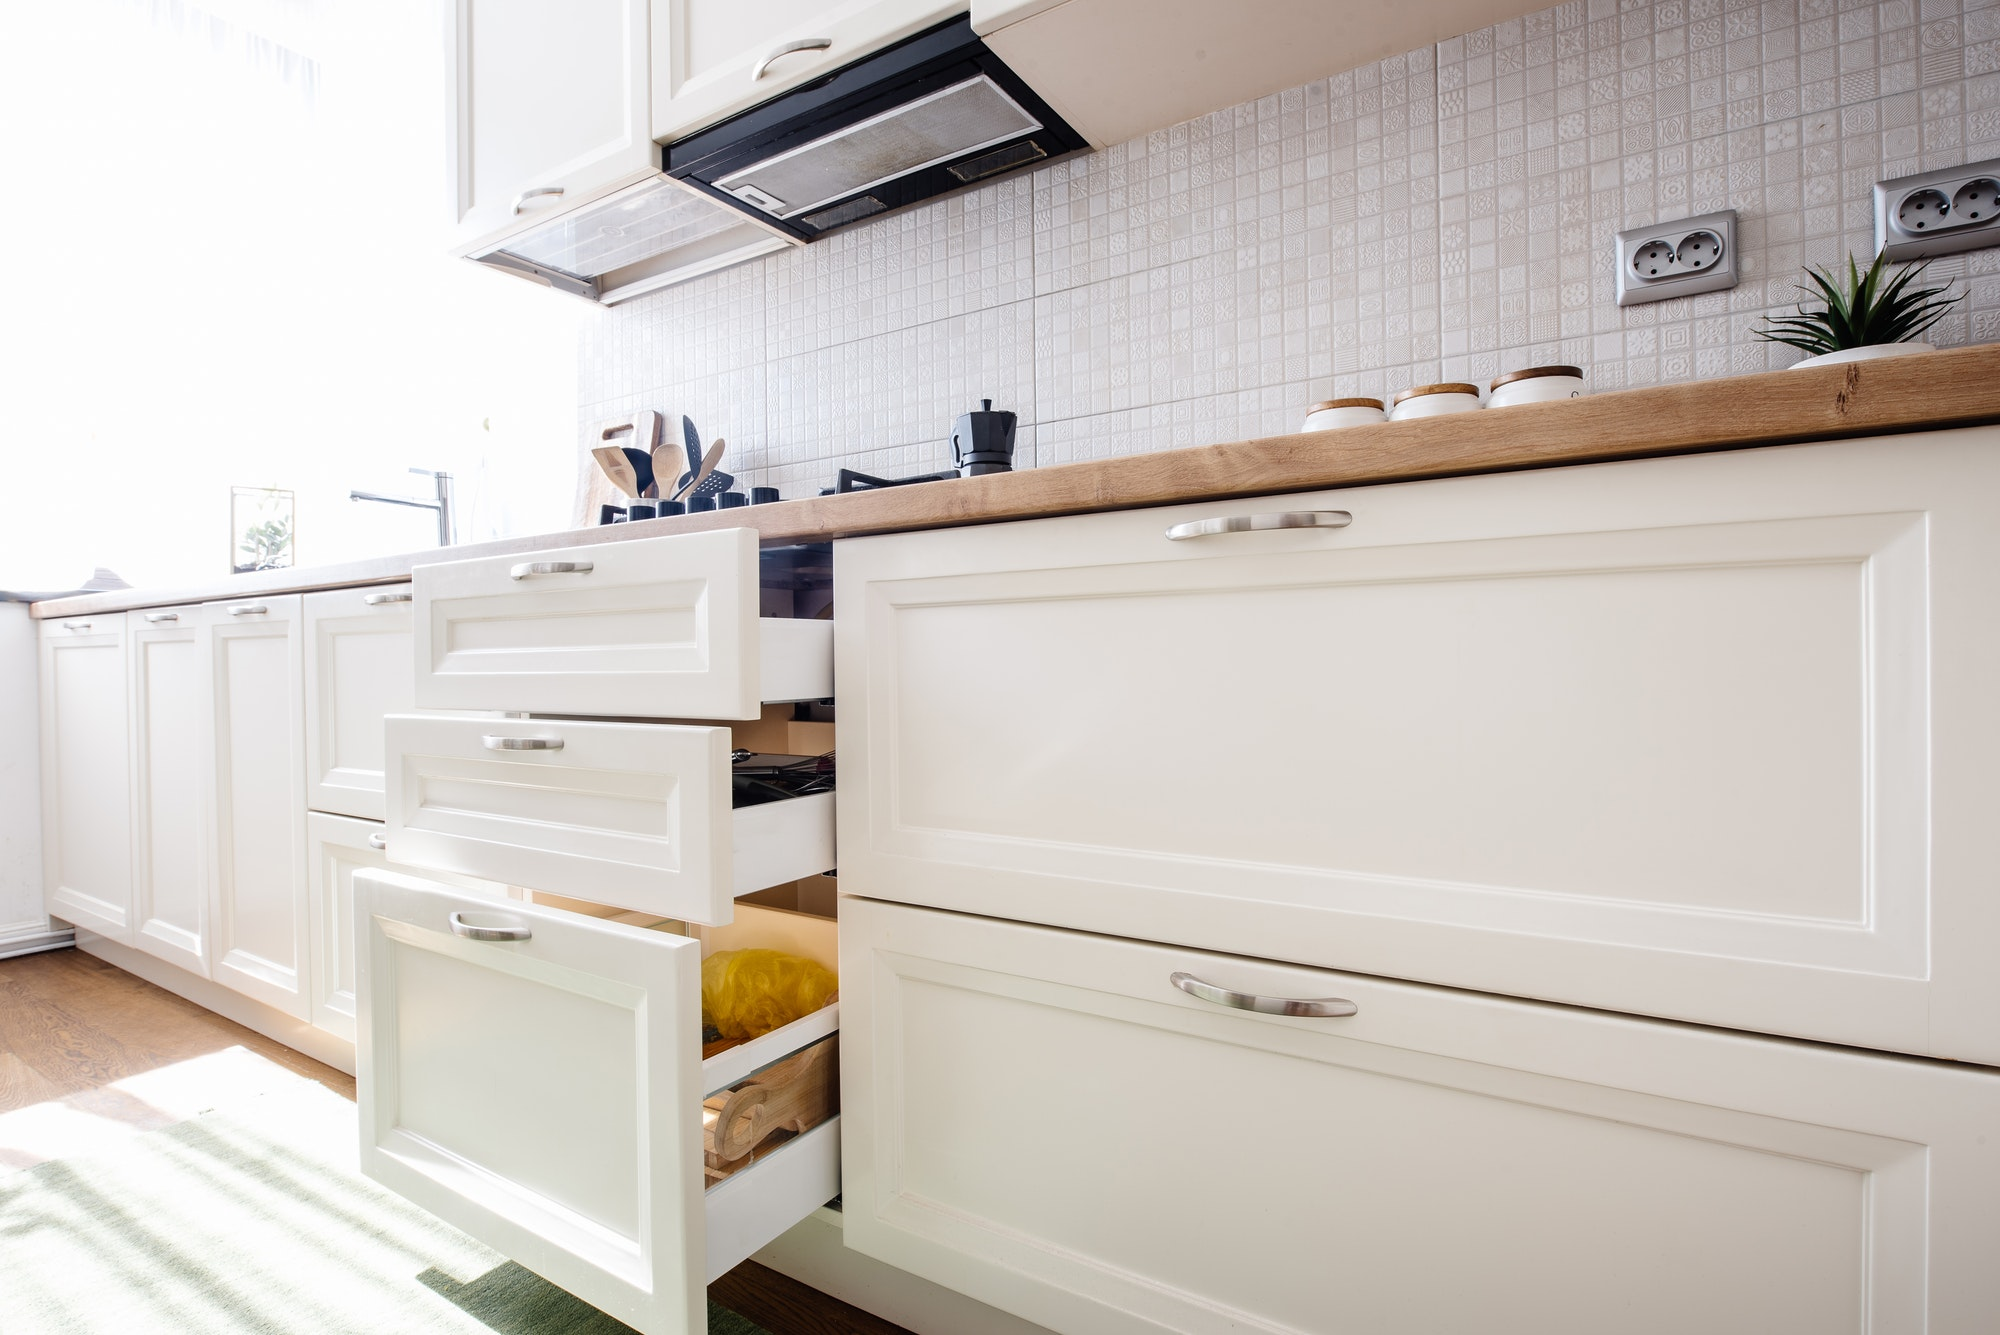 Modern Kitchen cabinets with new appliances